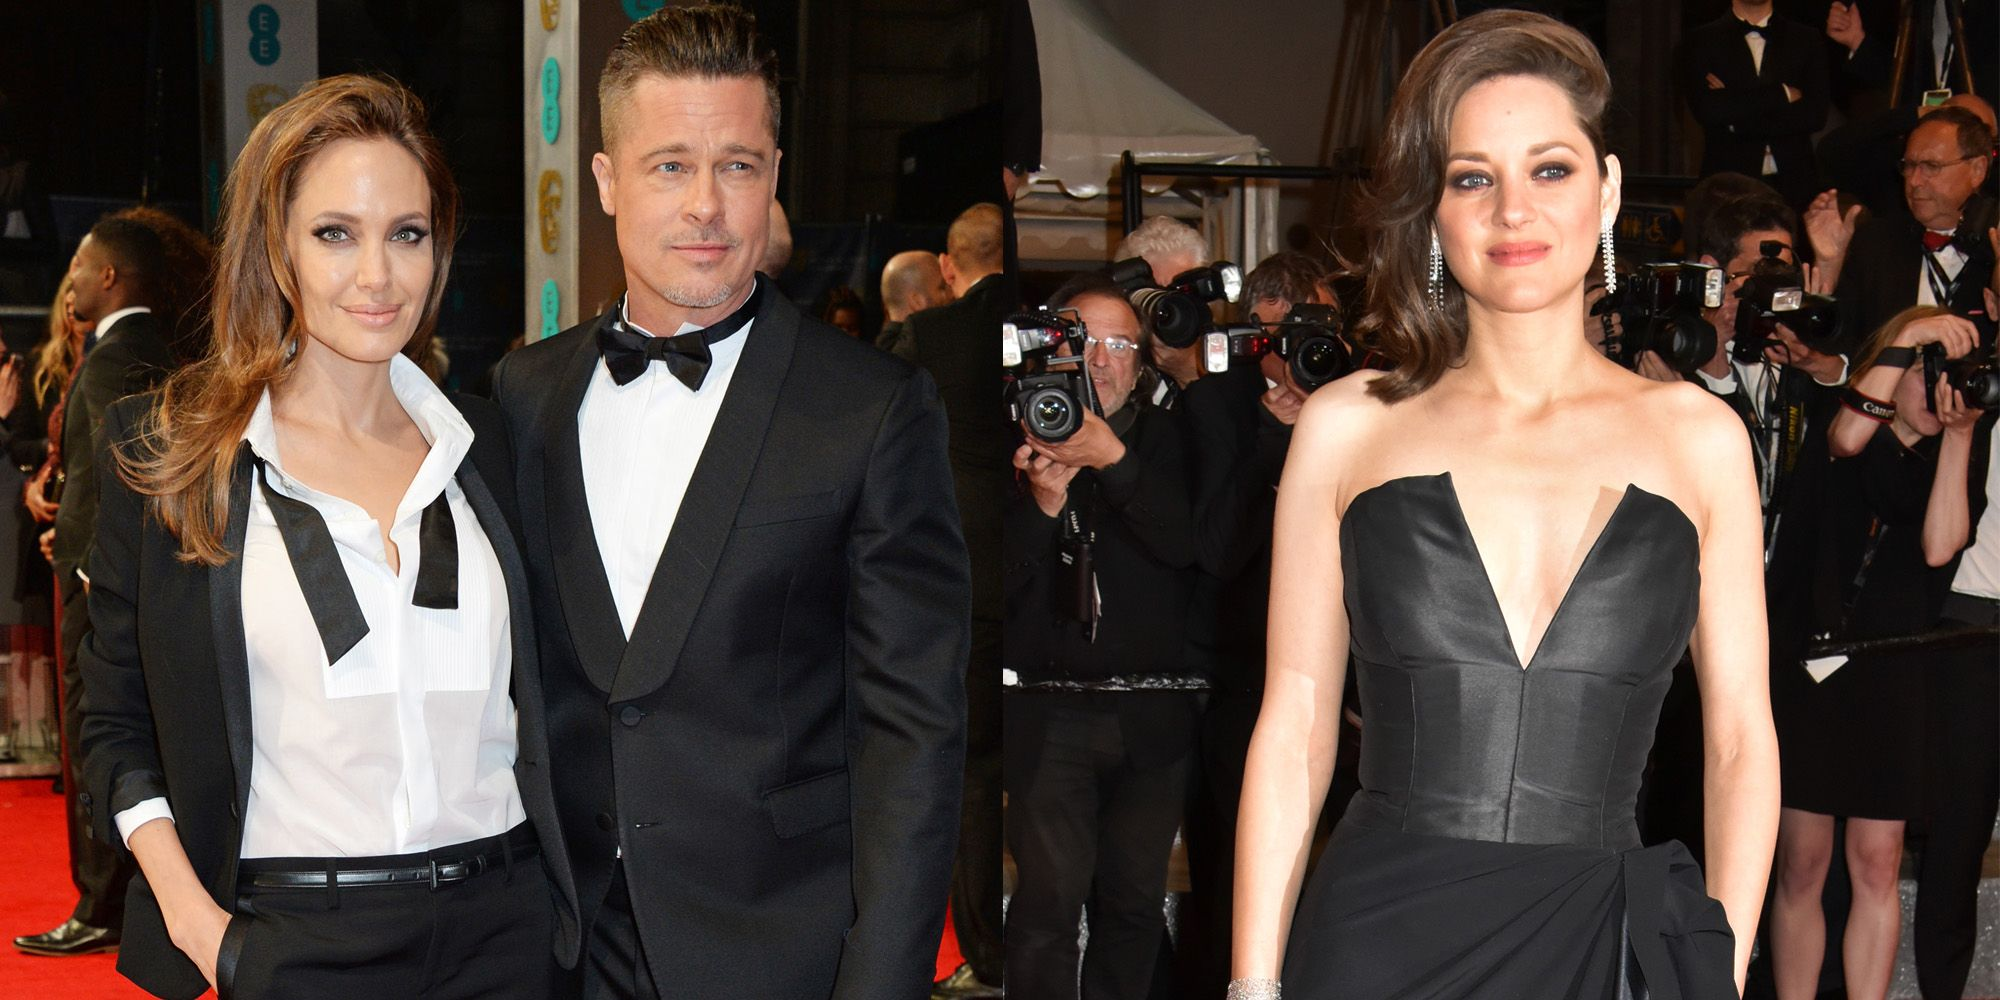 Brad Pitt Reportedly Had An Affair With Marion Cotillard